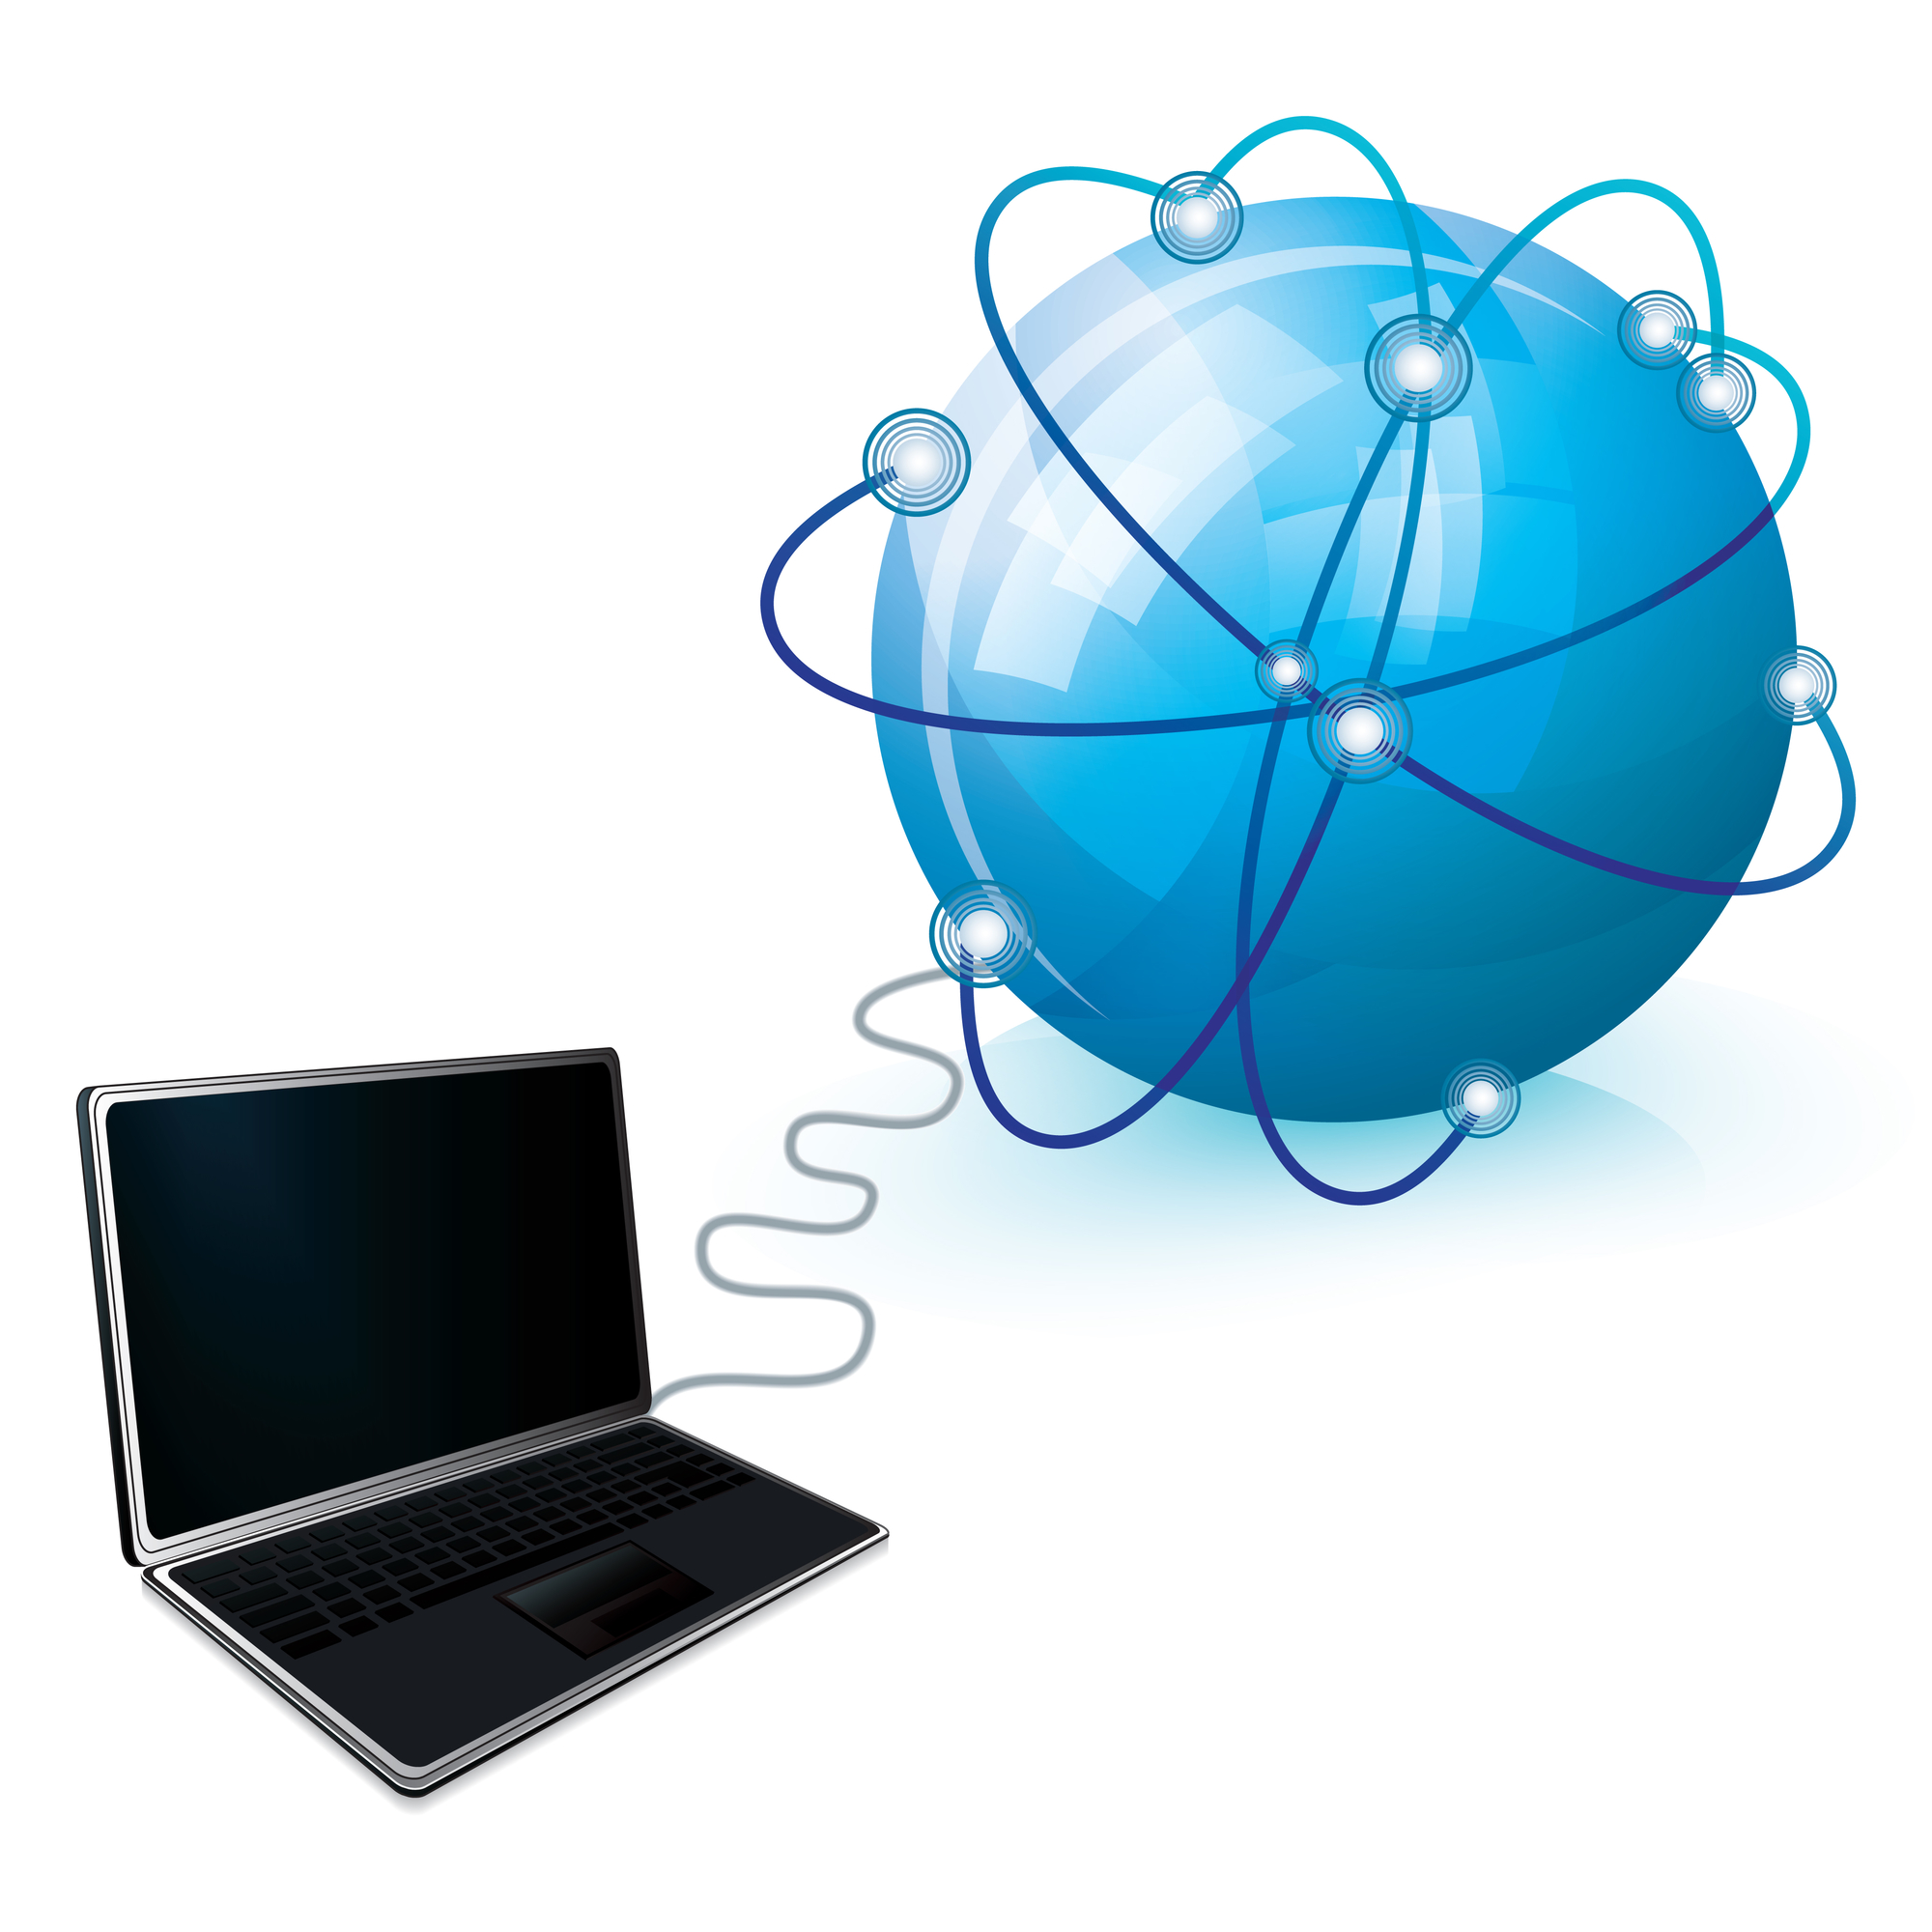 Internet connection with blue globe and laptop, vector illustration